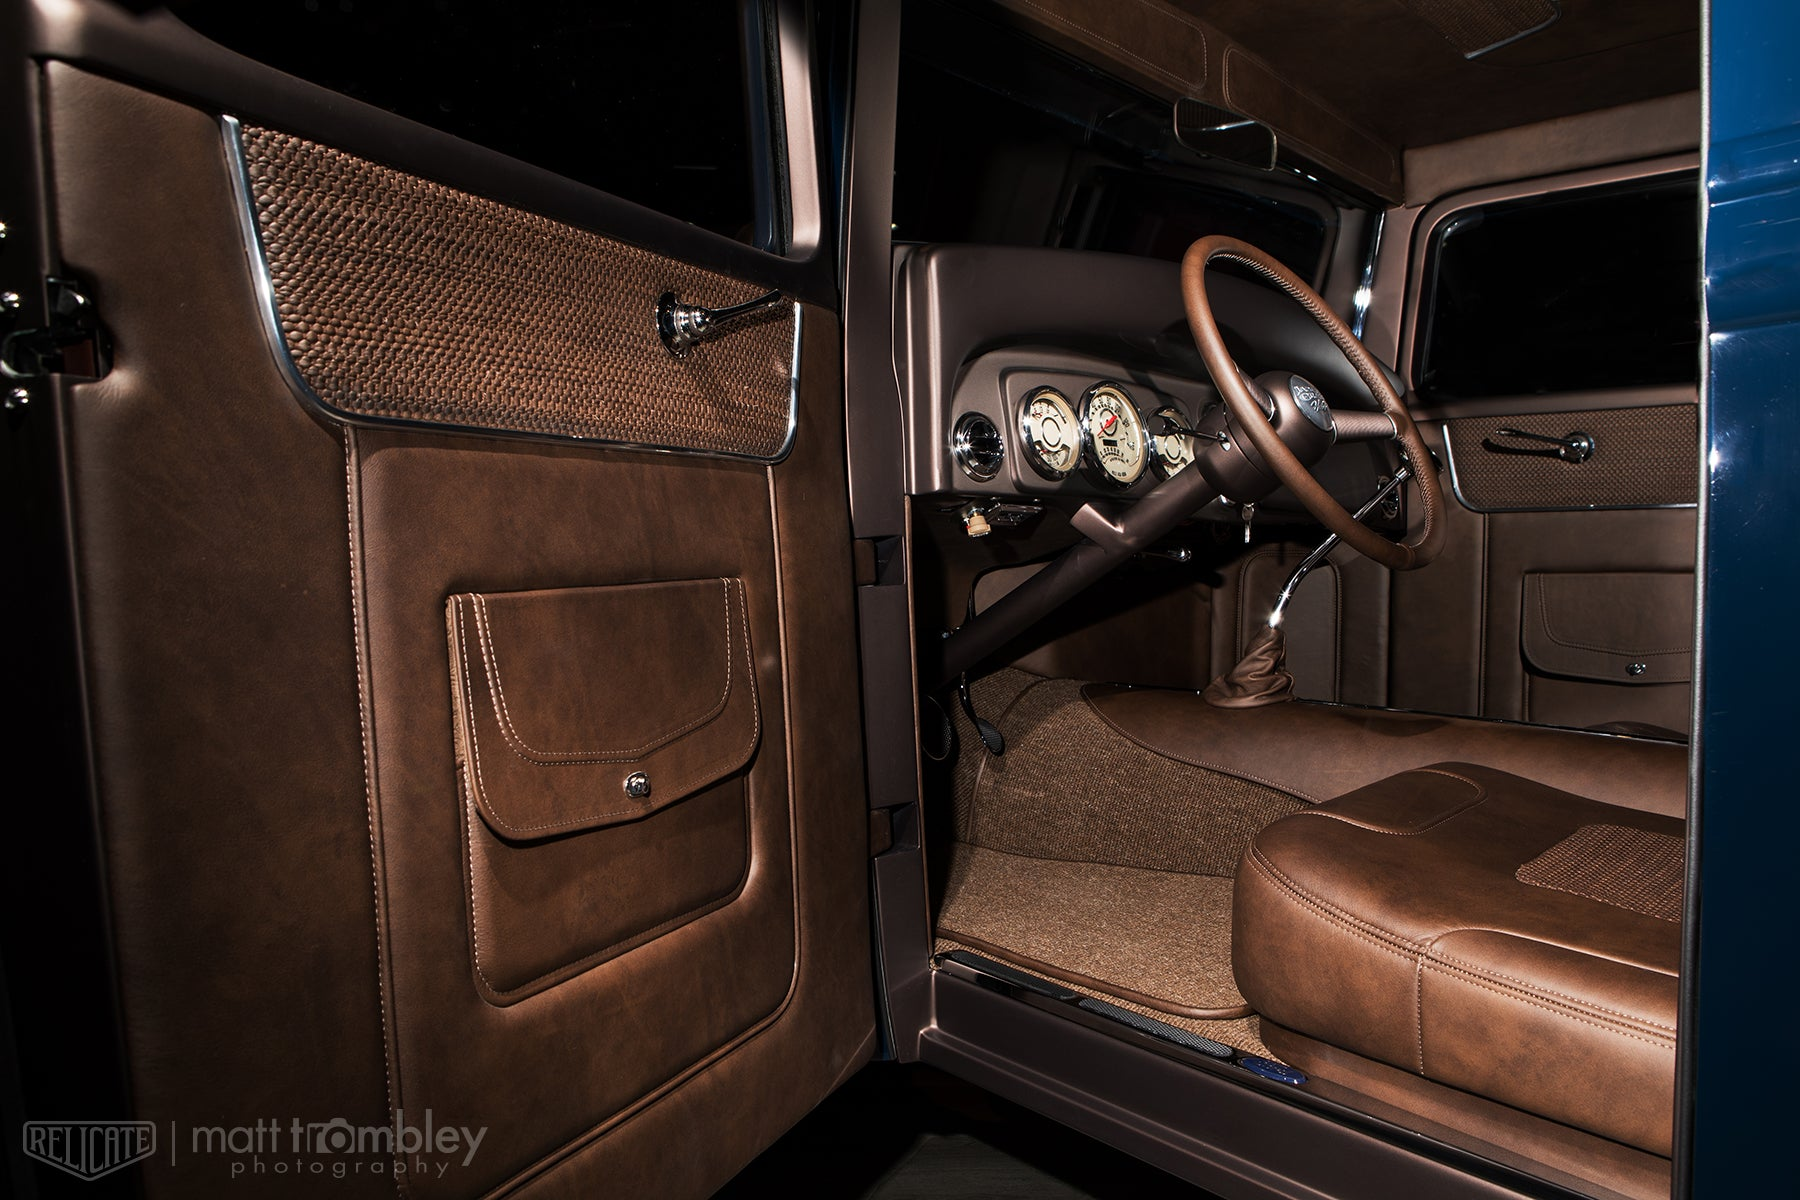 Relicate Antiqued and Woven Leather Jason Graham Hot Rods 1934 Ford Pickup